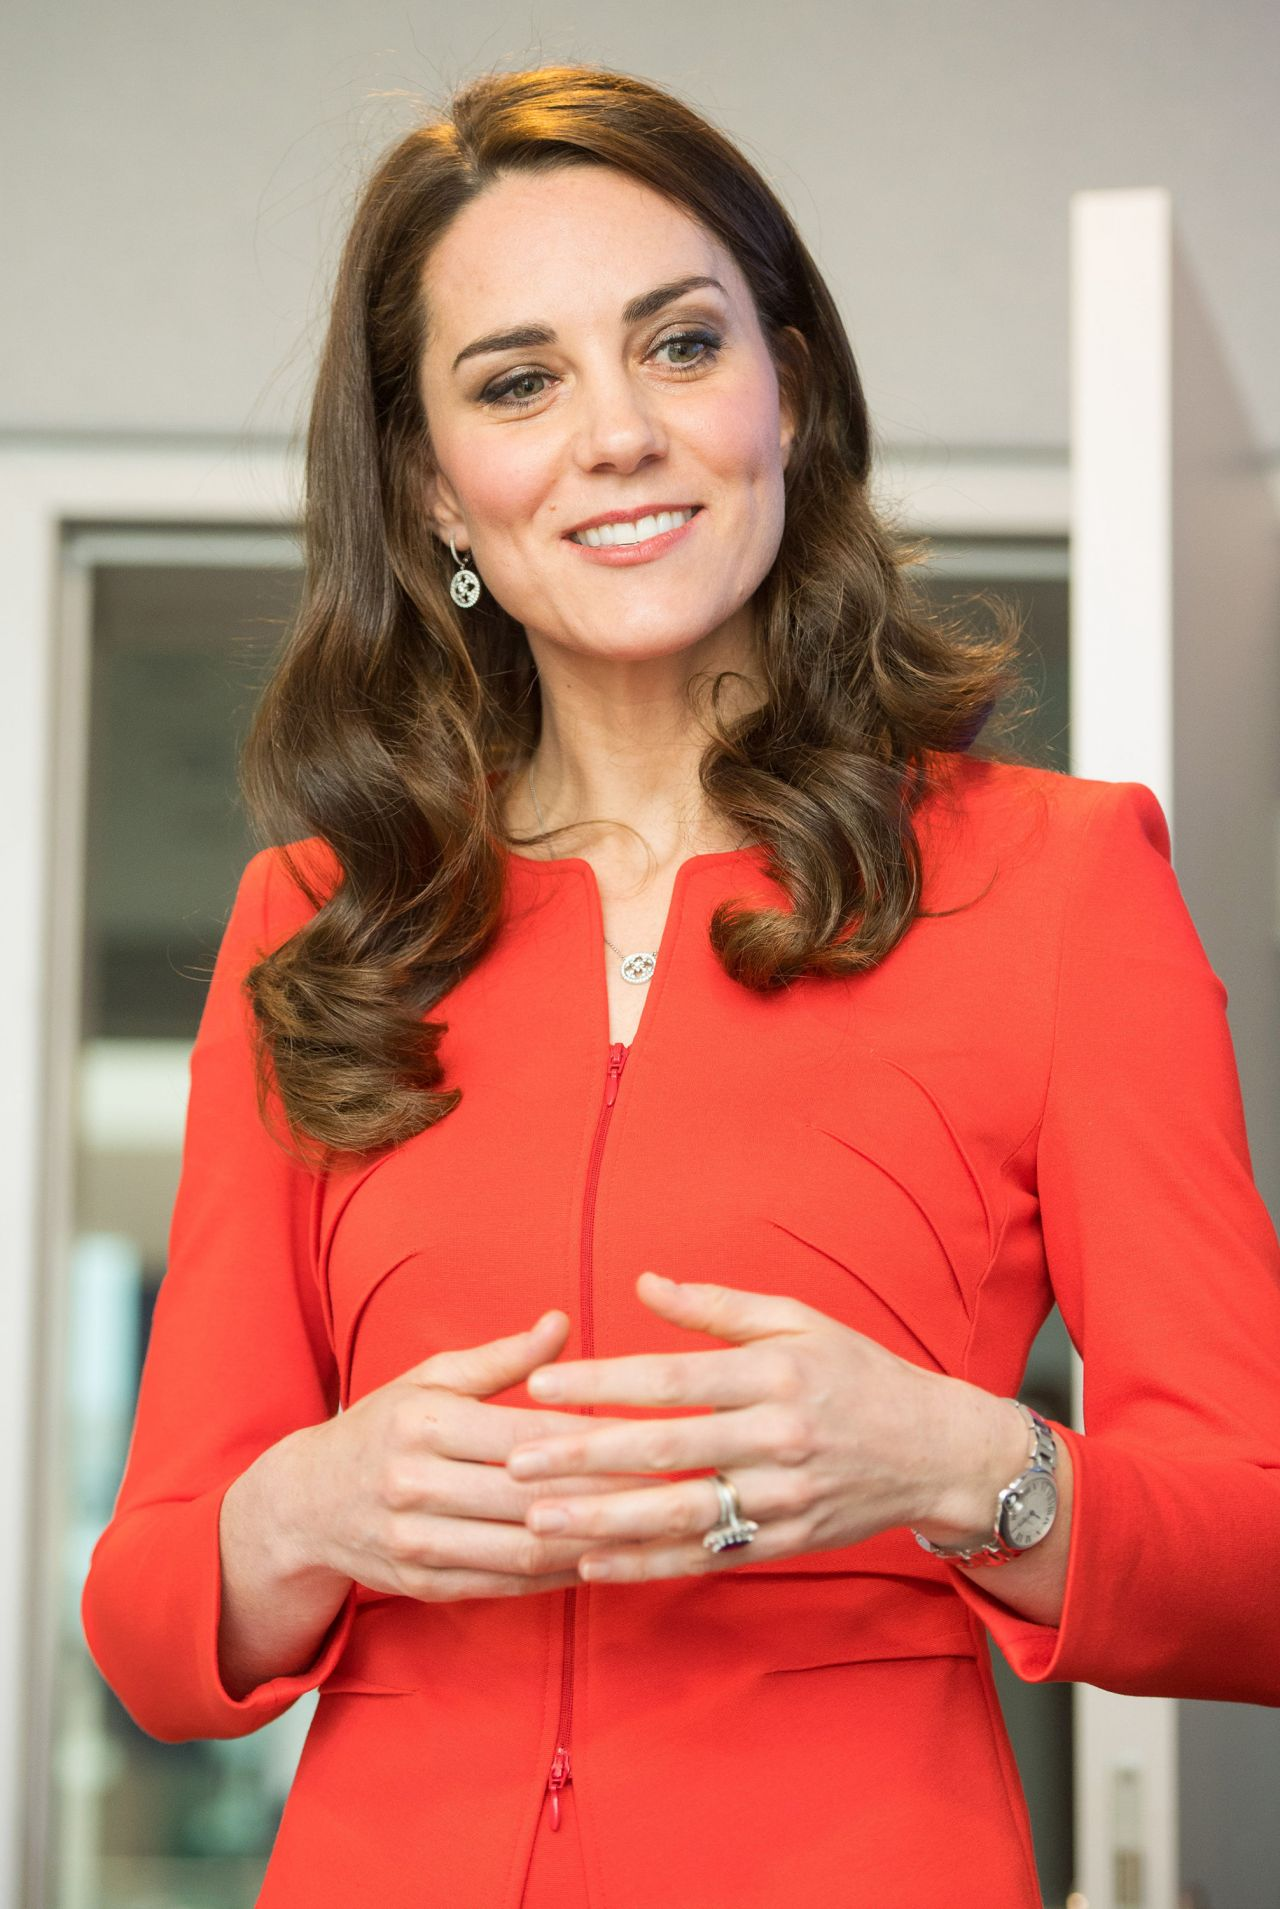 Kate Middleton, the Duchess of Cambridge, News